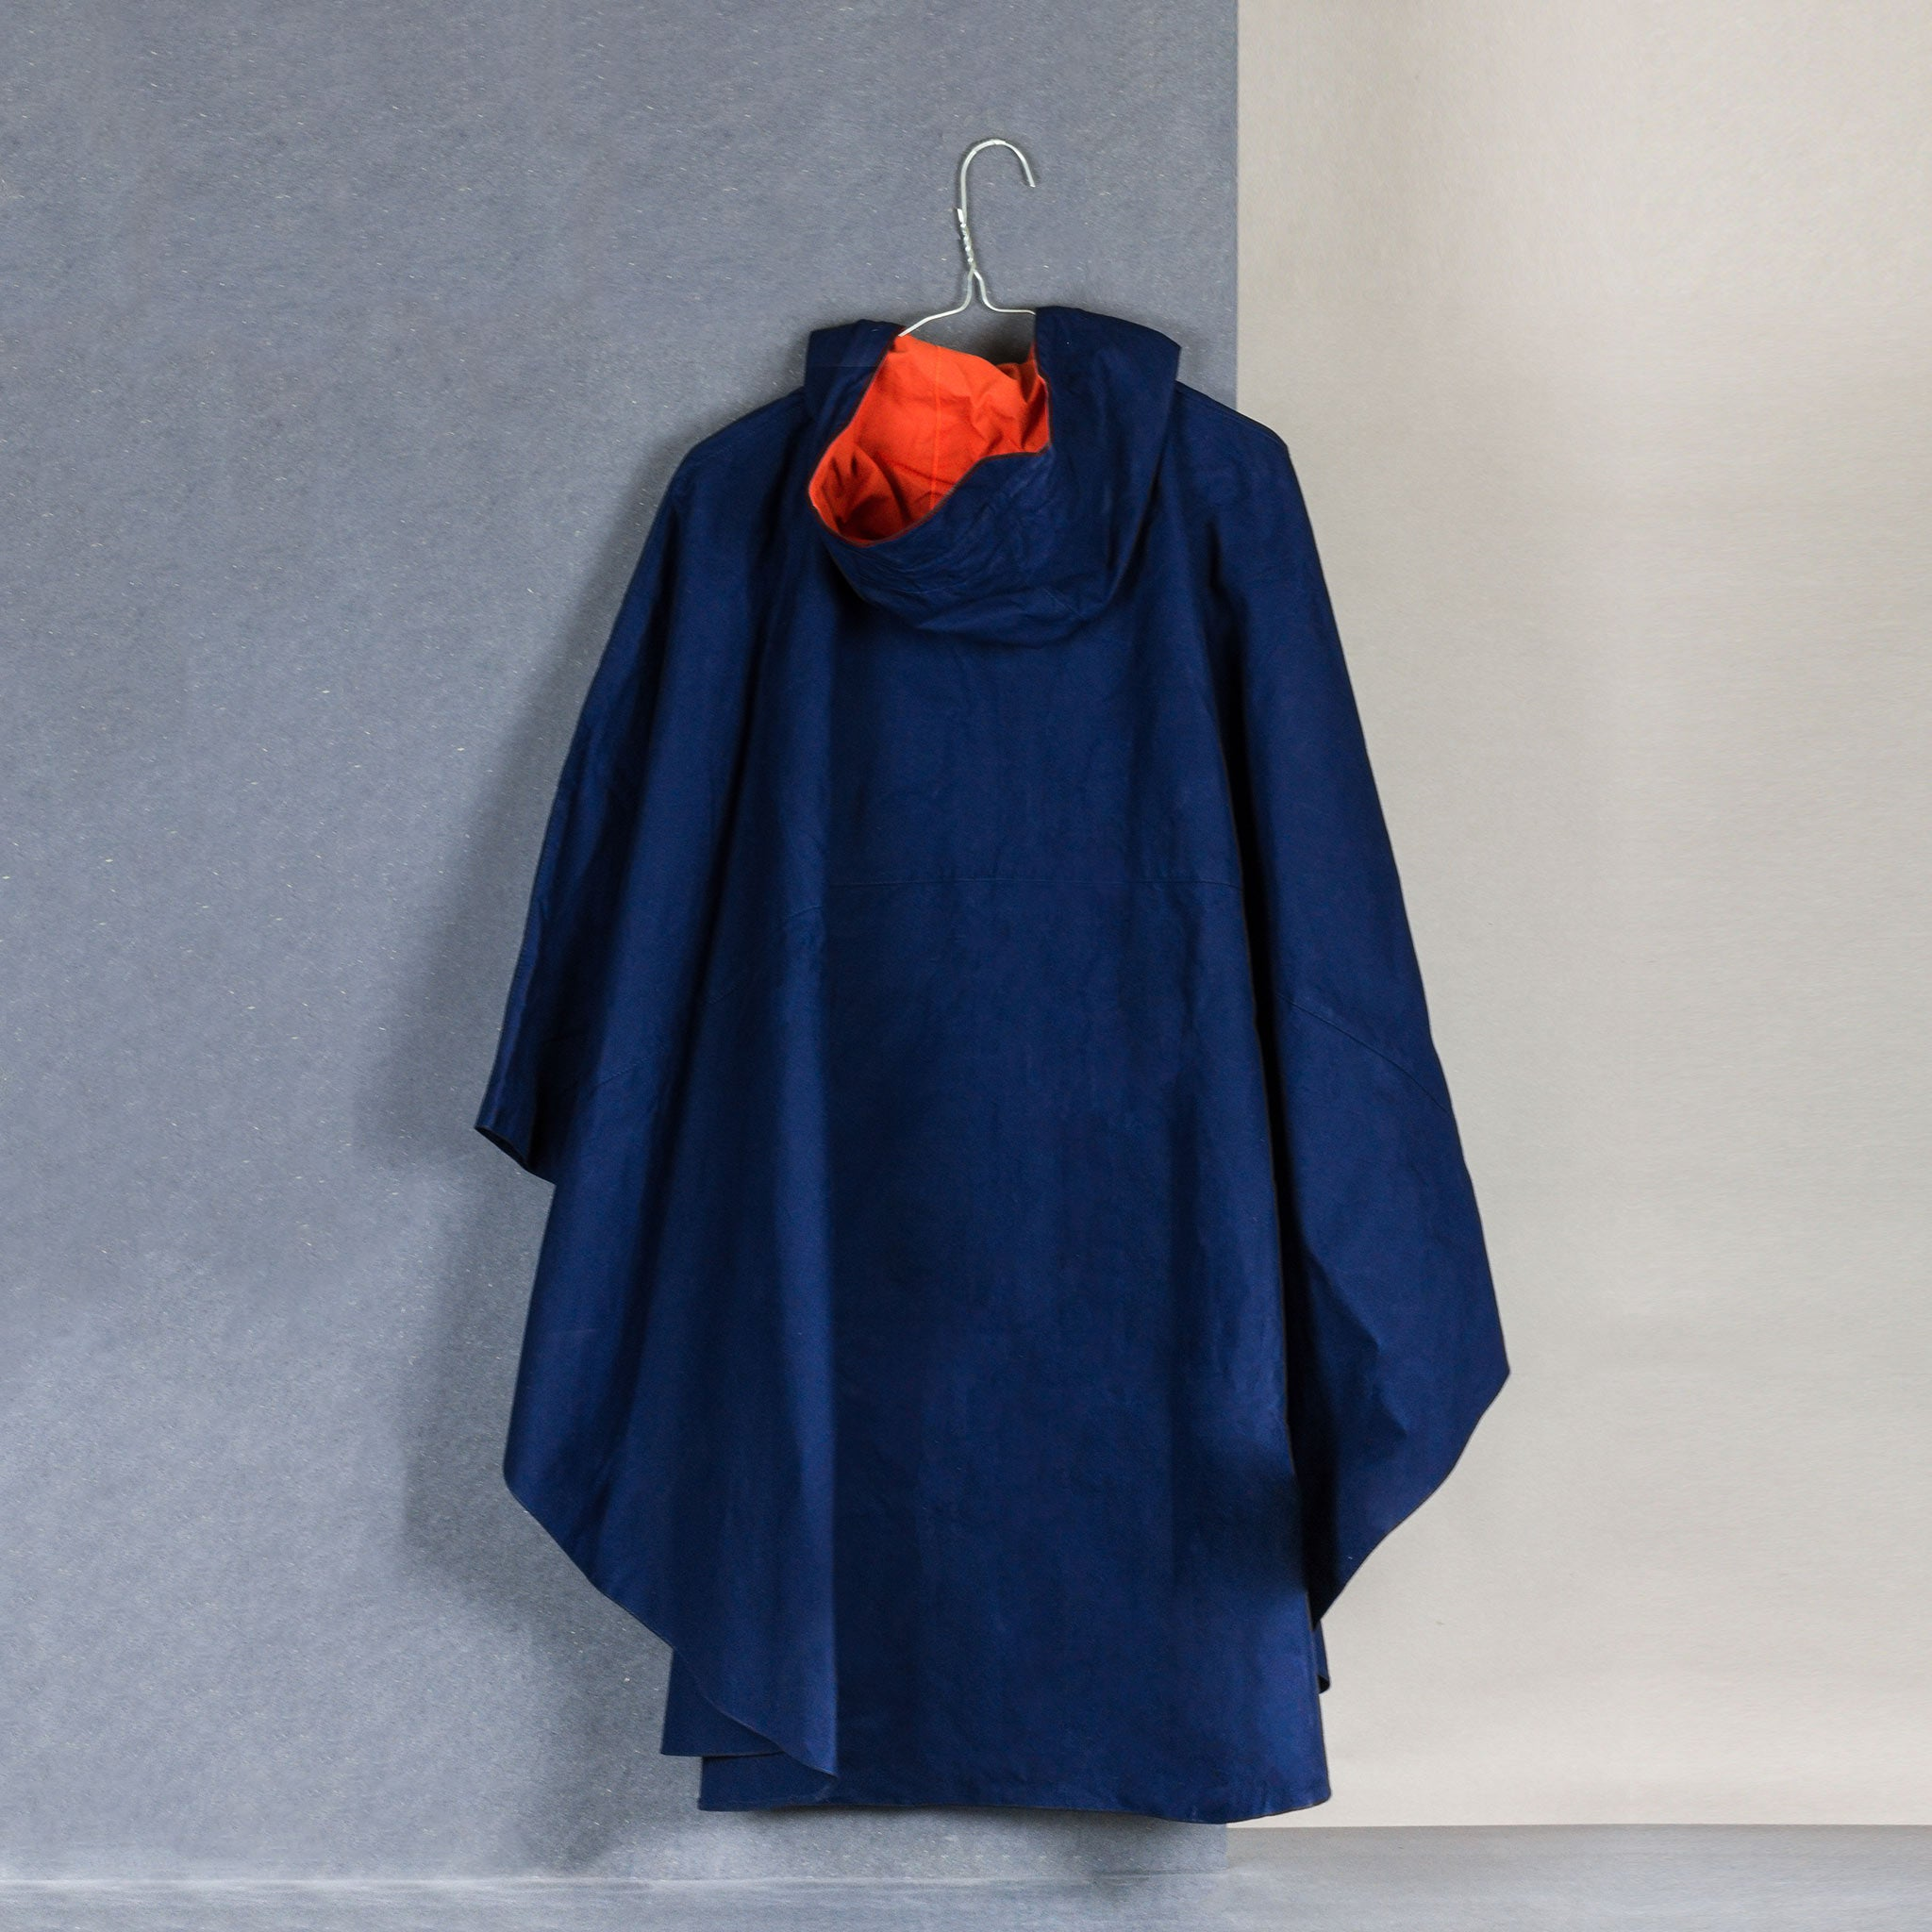 Calton Hill Edinburgh Scotland Collective Matter x Panel Rain Poncho Unisex Katie Schwab with Halley Stevensons and Greenhills Clothing Mary Quant Dark Navy Orange Waxed Cotton